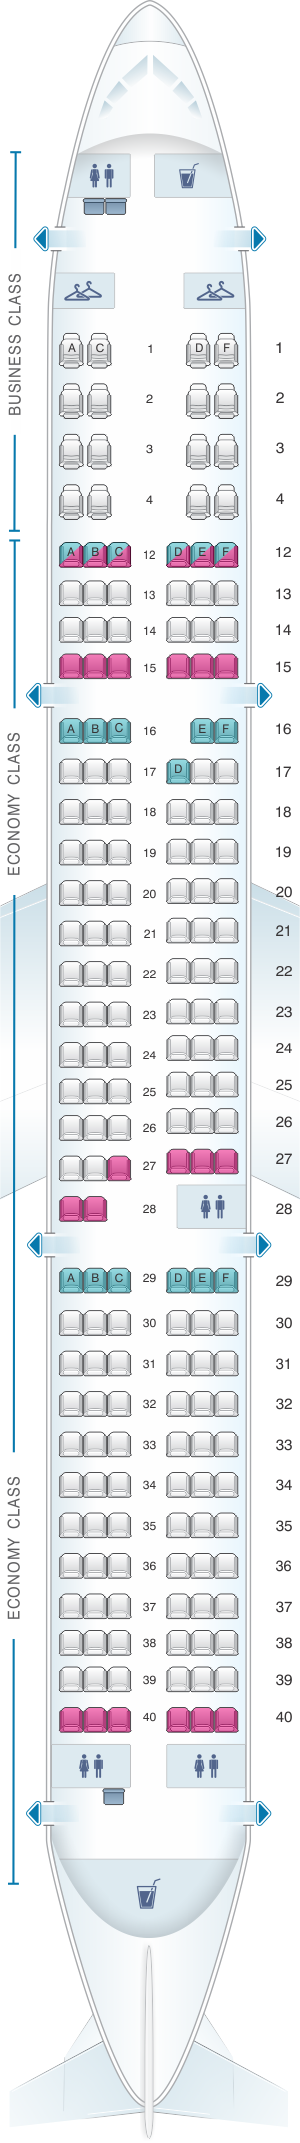 Seat map for Air Canada Airbus A321 200 Layout 1